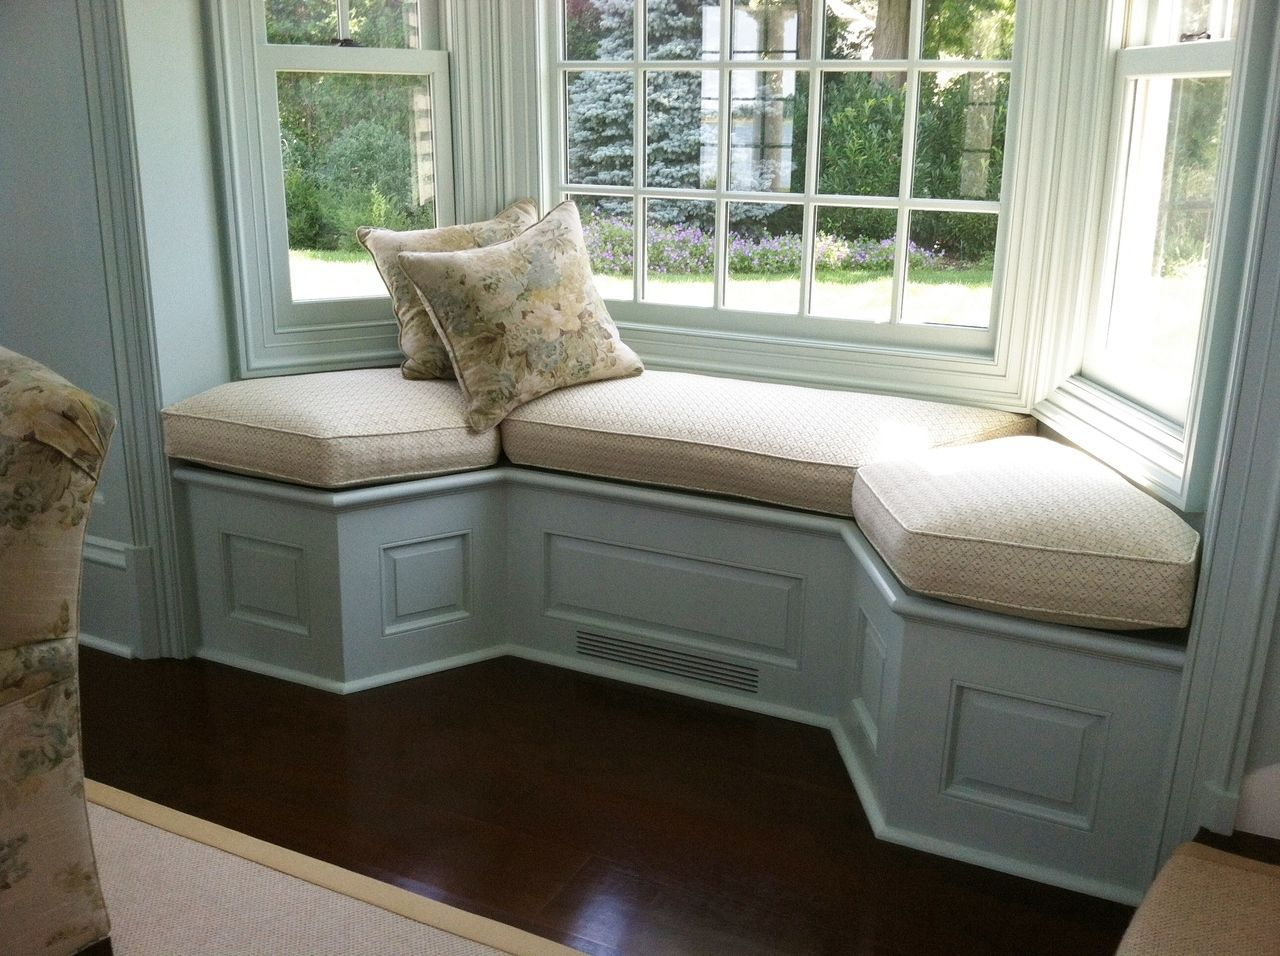 Country Window Seat Cushion Custom Made Window Seats Cushions With Measure And Install Service Ava Bench Seating Kitchen Bay Window Benches Window Seat Kitchen